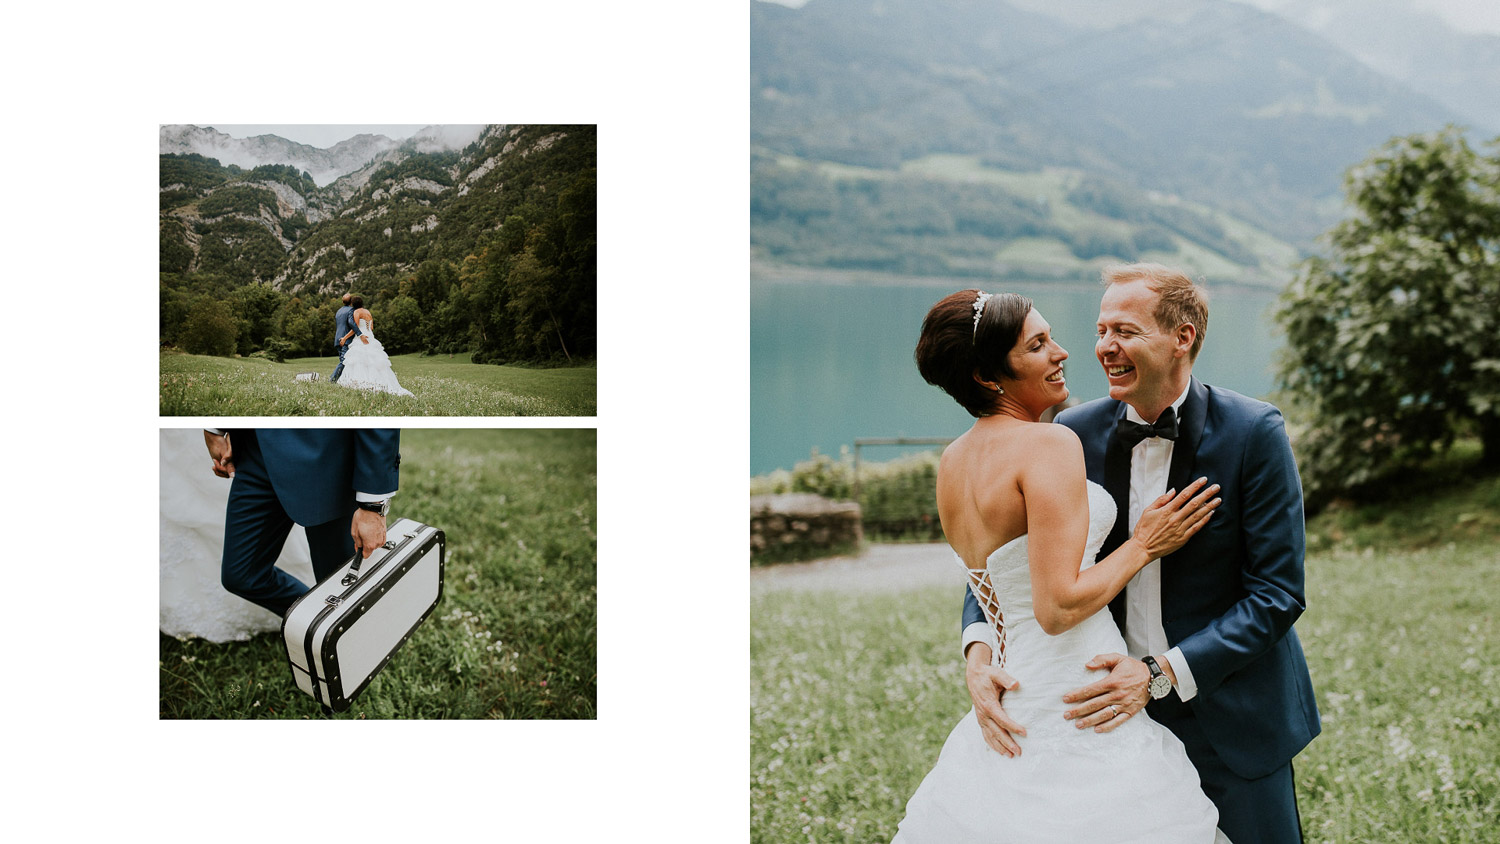 Hochzeitsfotograf in Zürich - True Love Photography